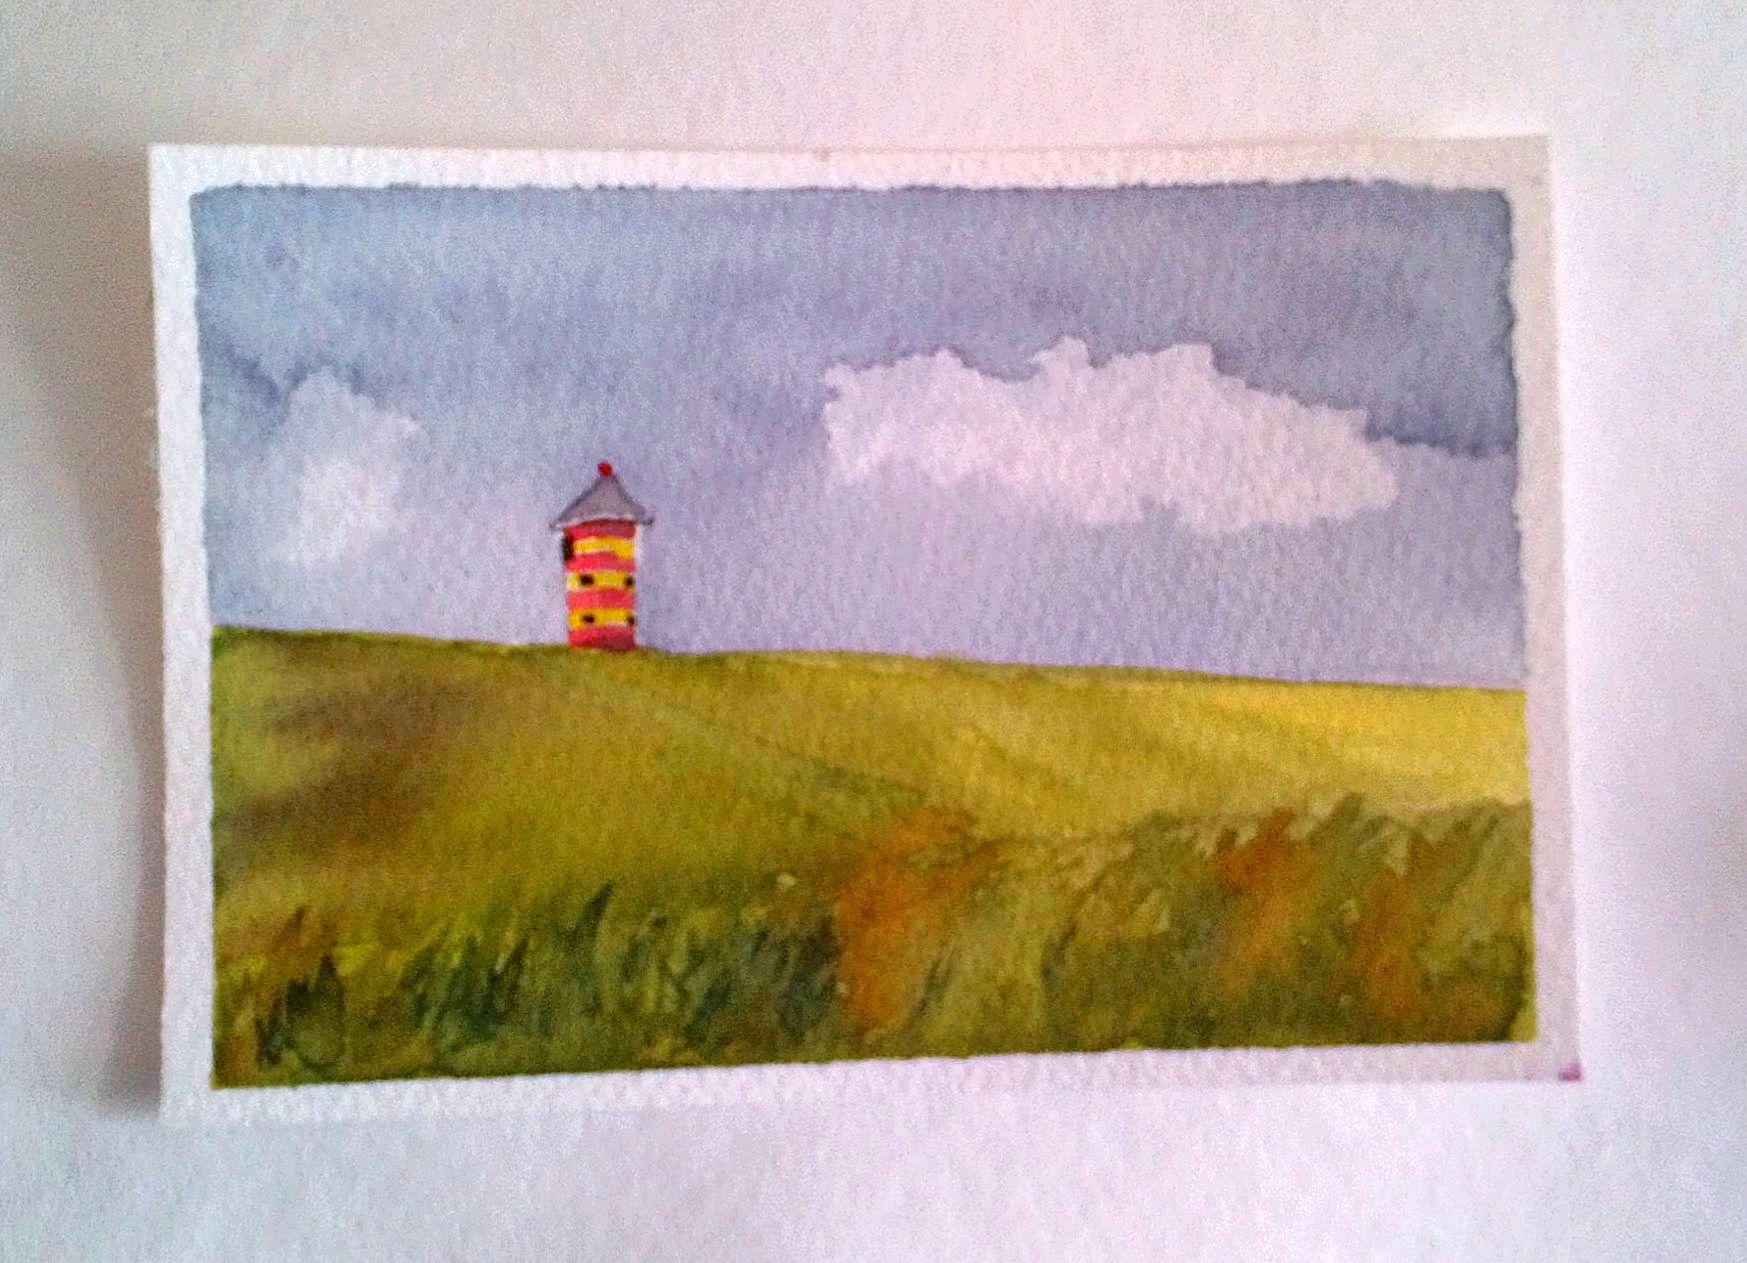 Letztes Bild am dritten Tag/ Last little painting on the 3rd day